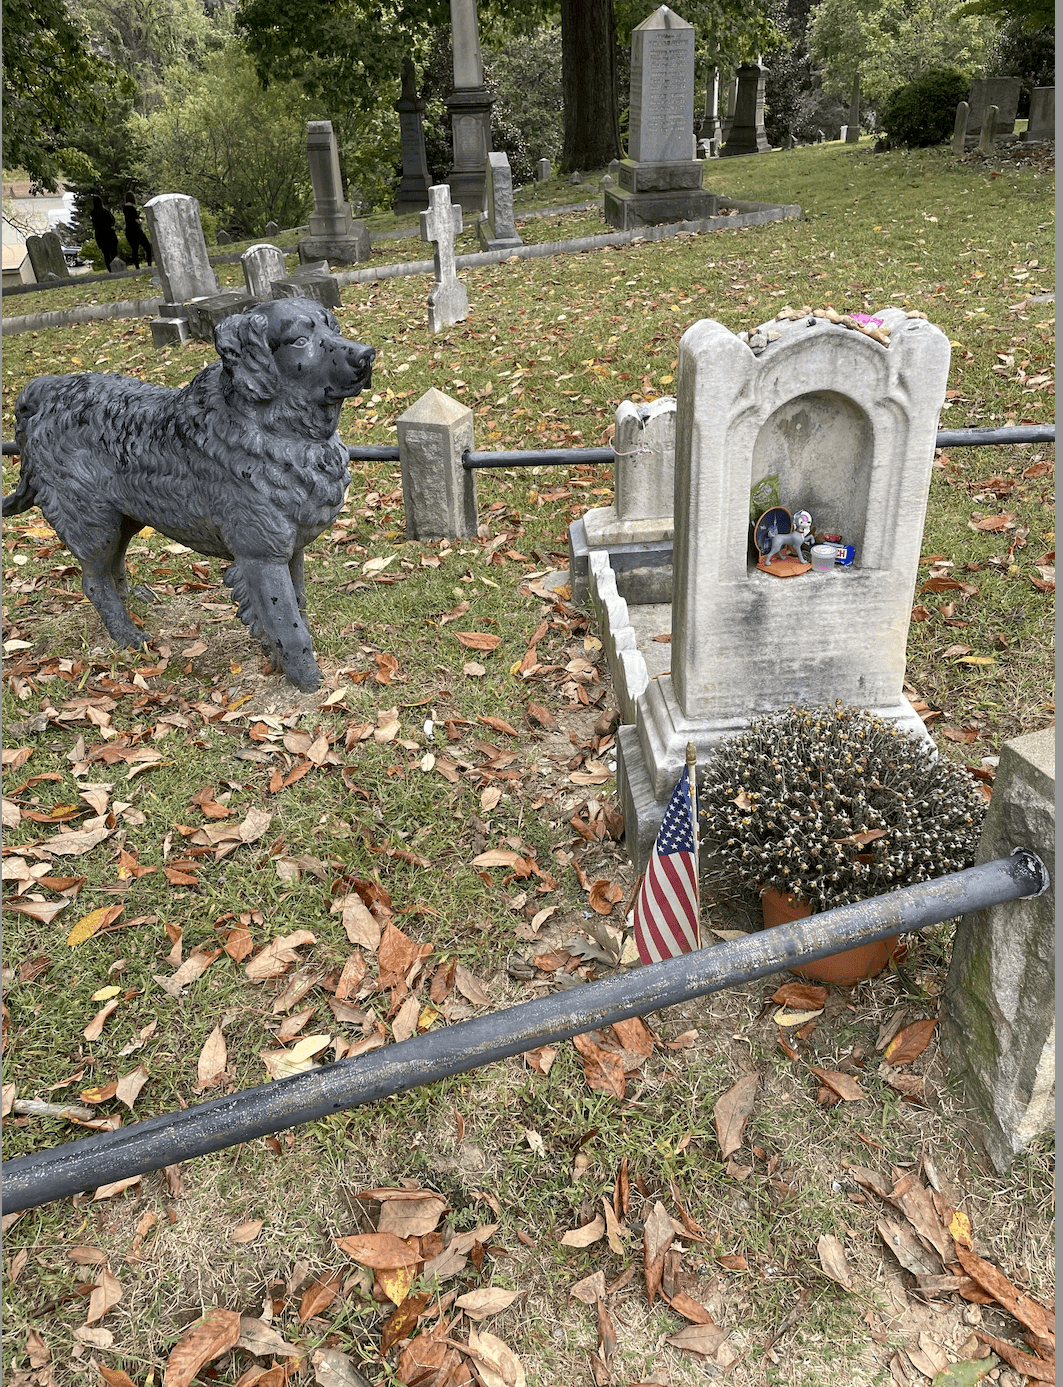 Gravesite of a young girl and iron dog